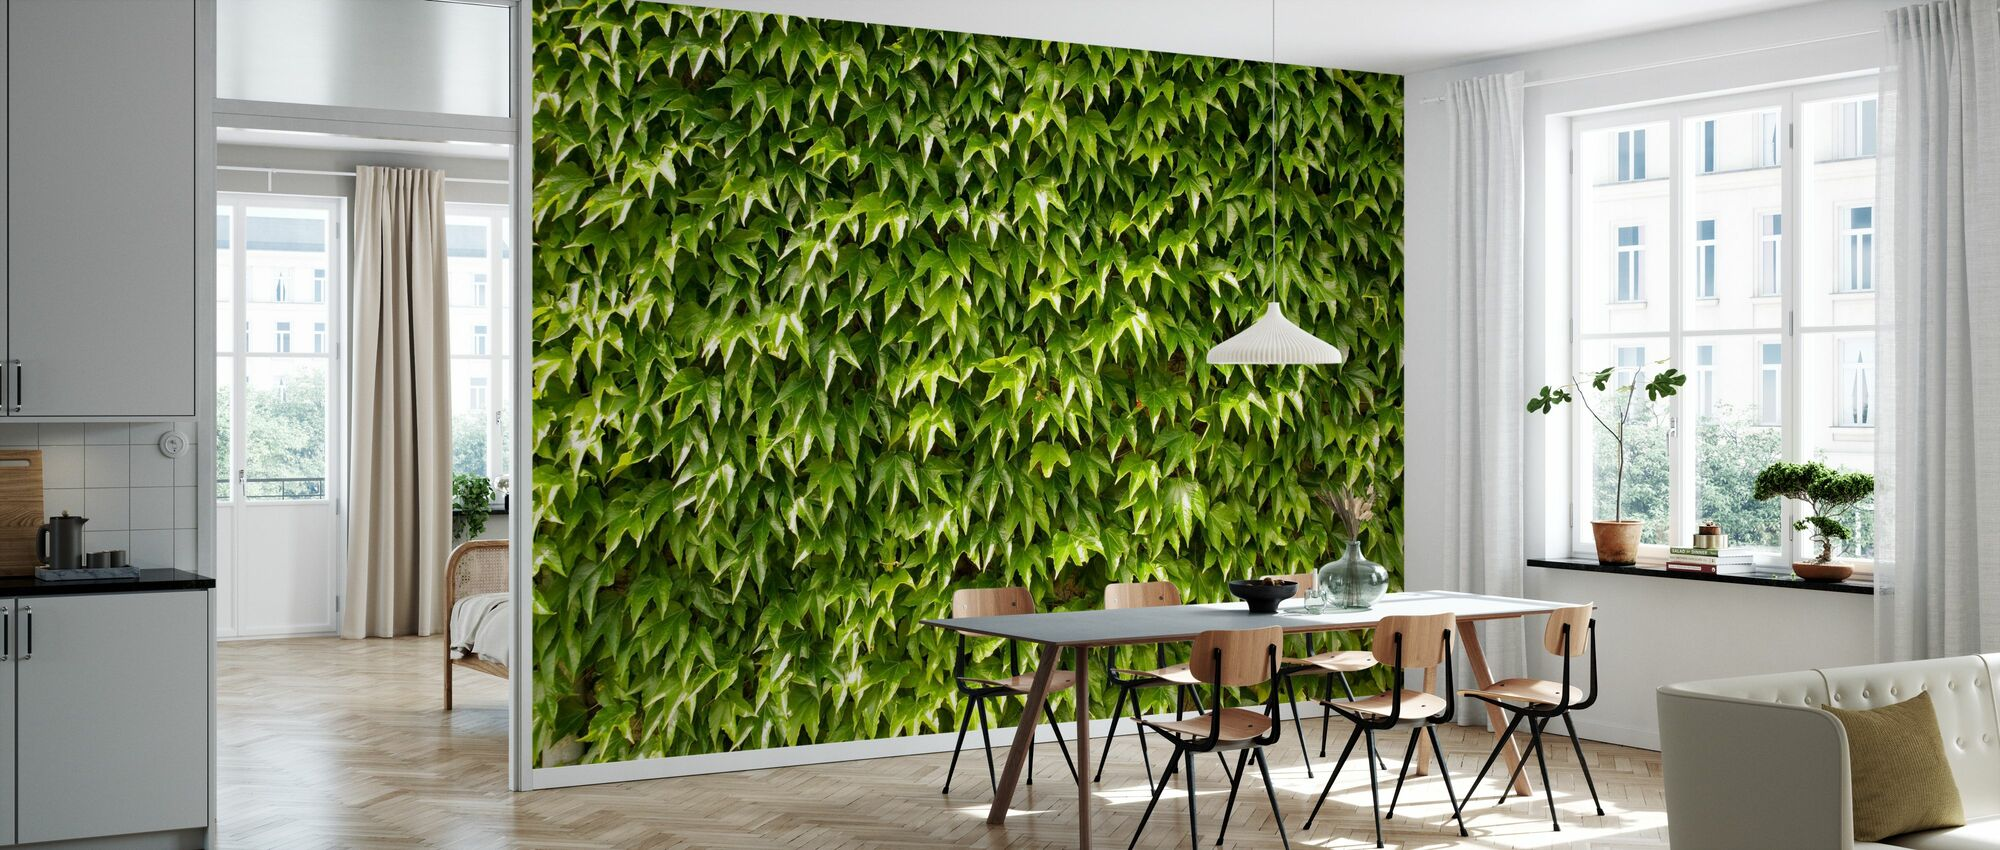 Green Wall of Ivy Leaves - Wallpaper - Kitchen